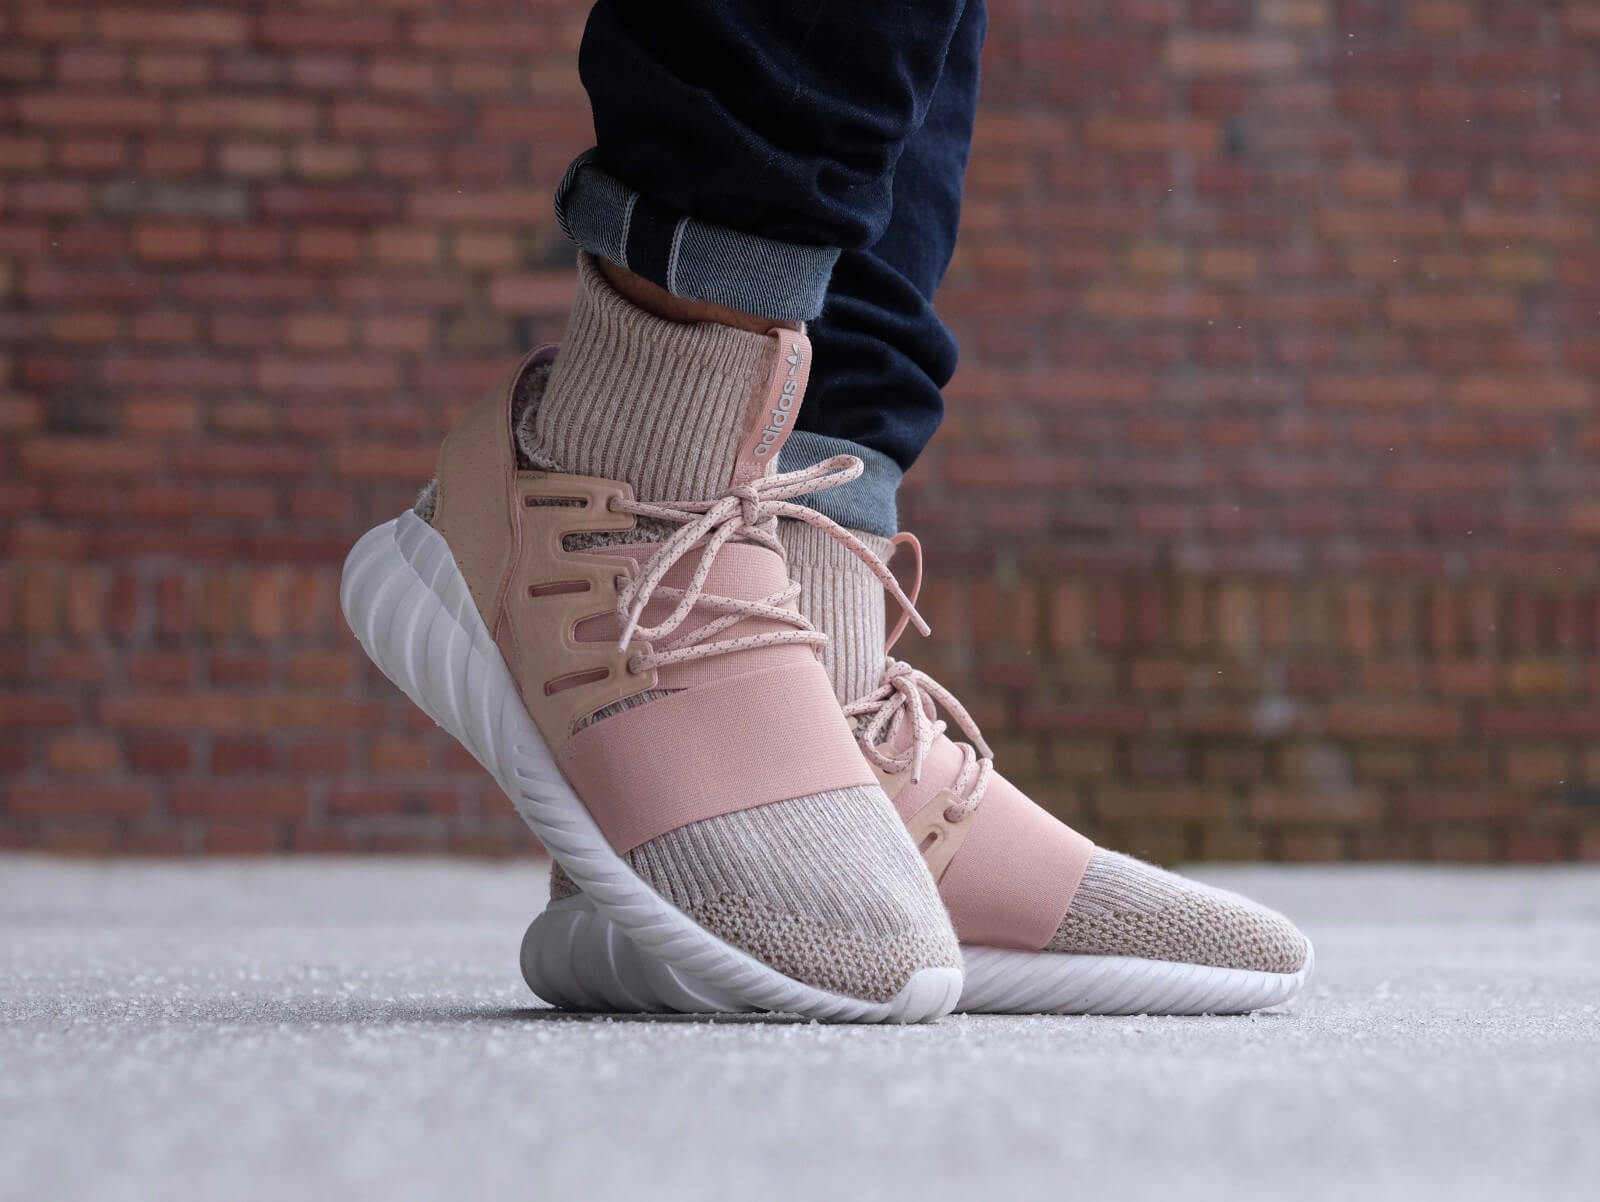 Check Out The Brand New adidas Tubular Basketball Primeknit